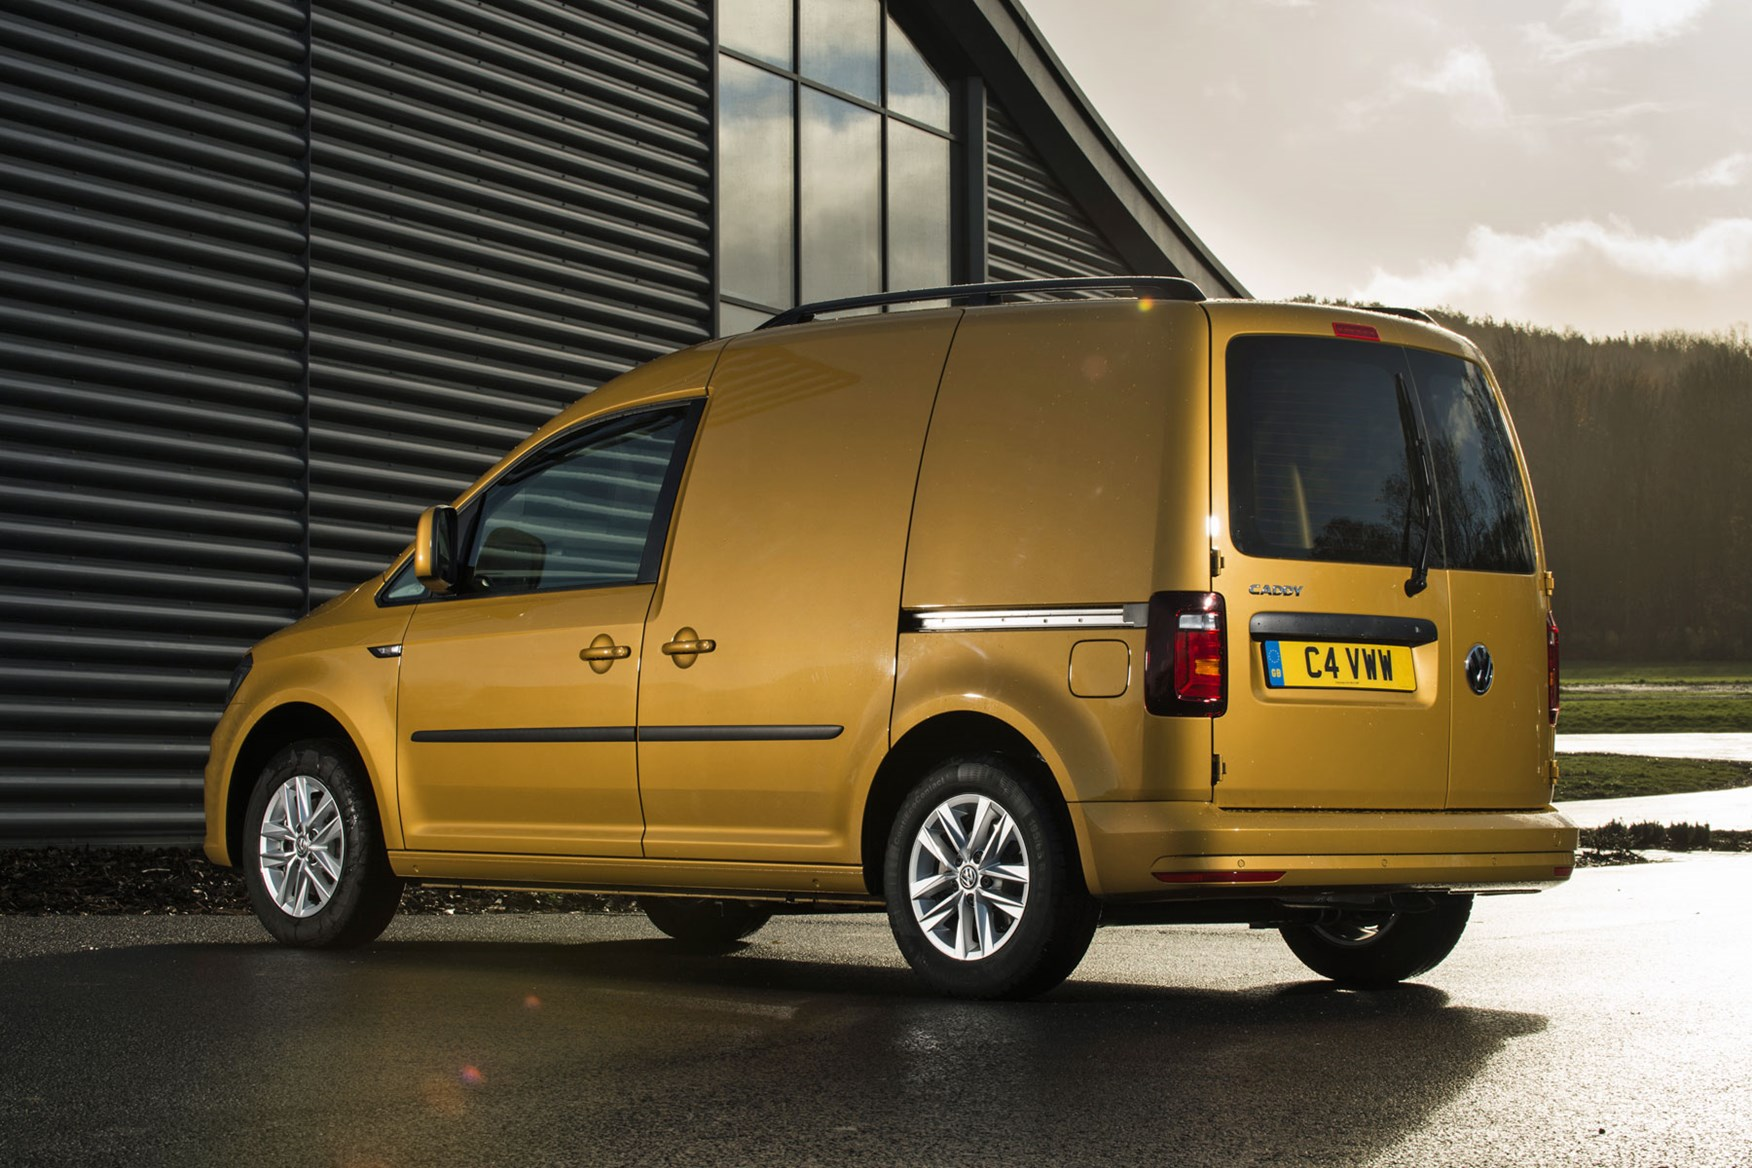 VW Caddy review - 2018 model, rear view, yellow